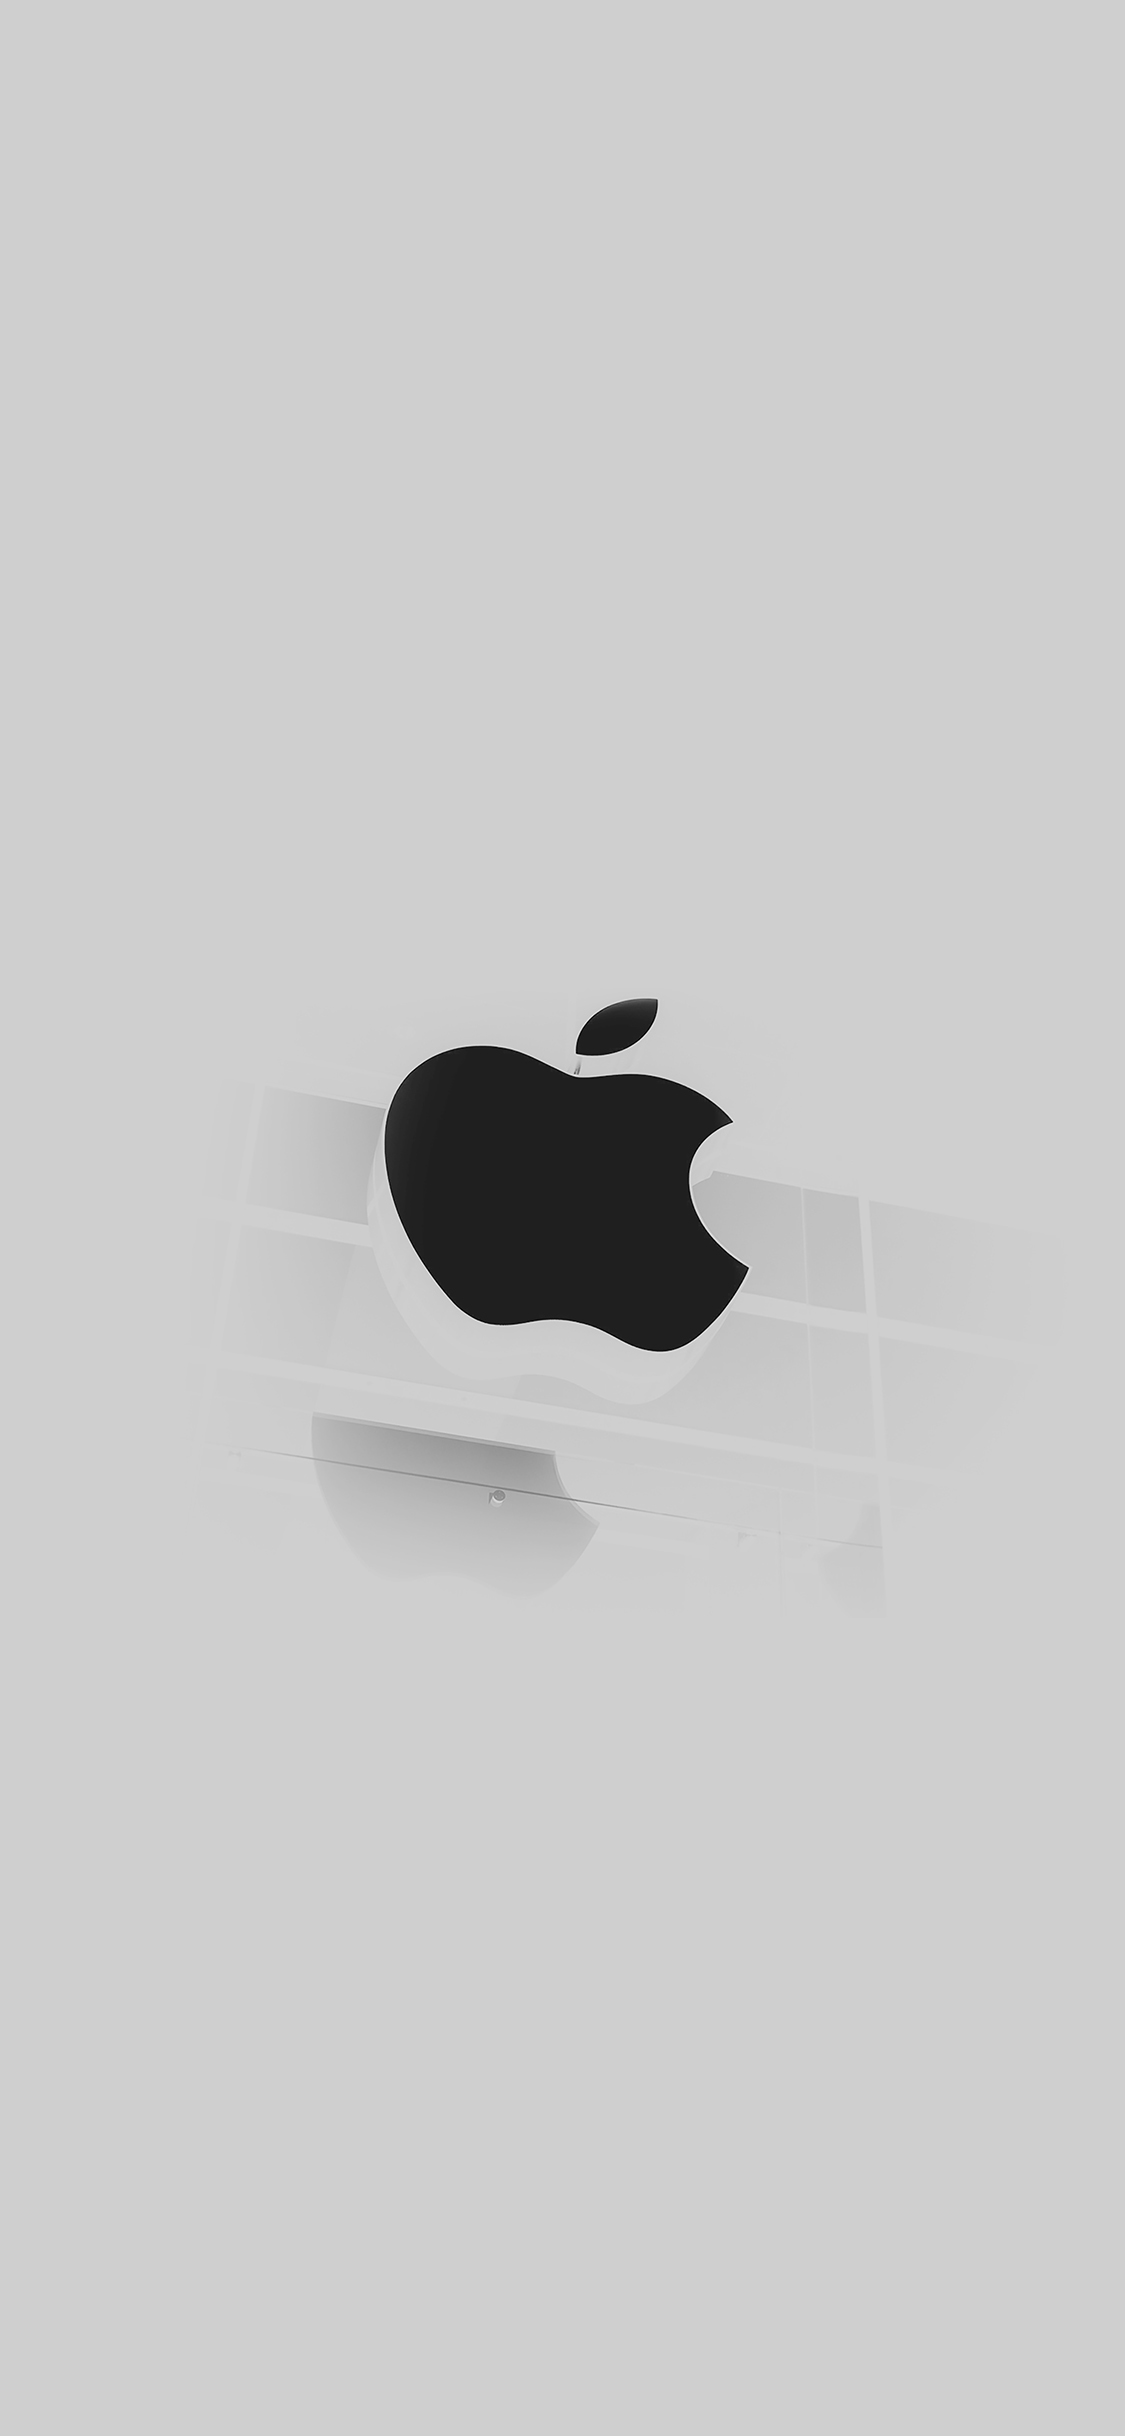 iphonepapers - ac55-wallpaper-apple-logo-glass-white-iphone6-ready